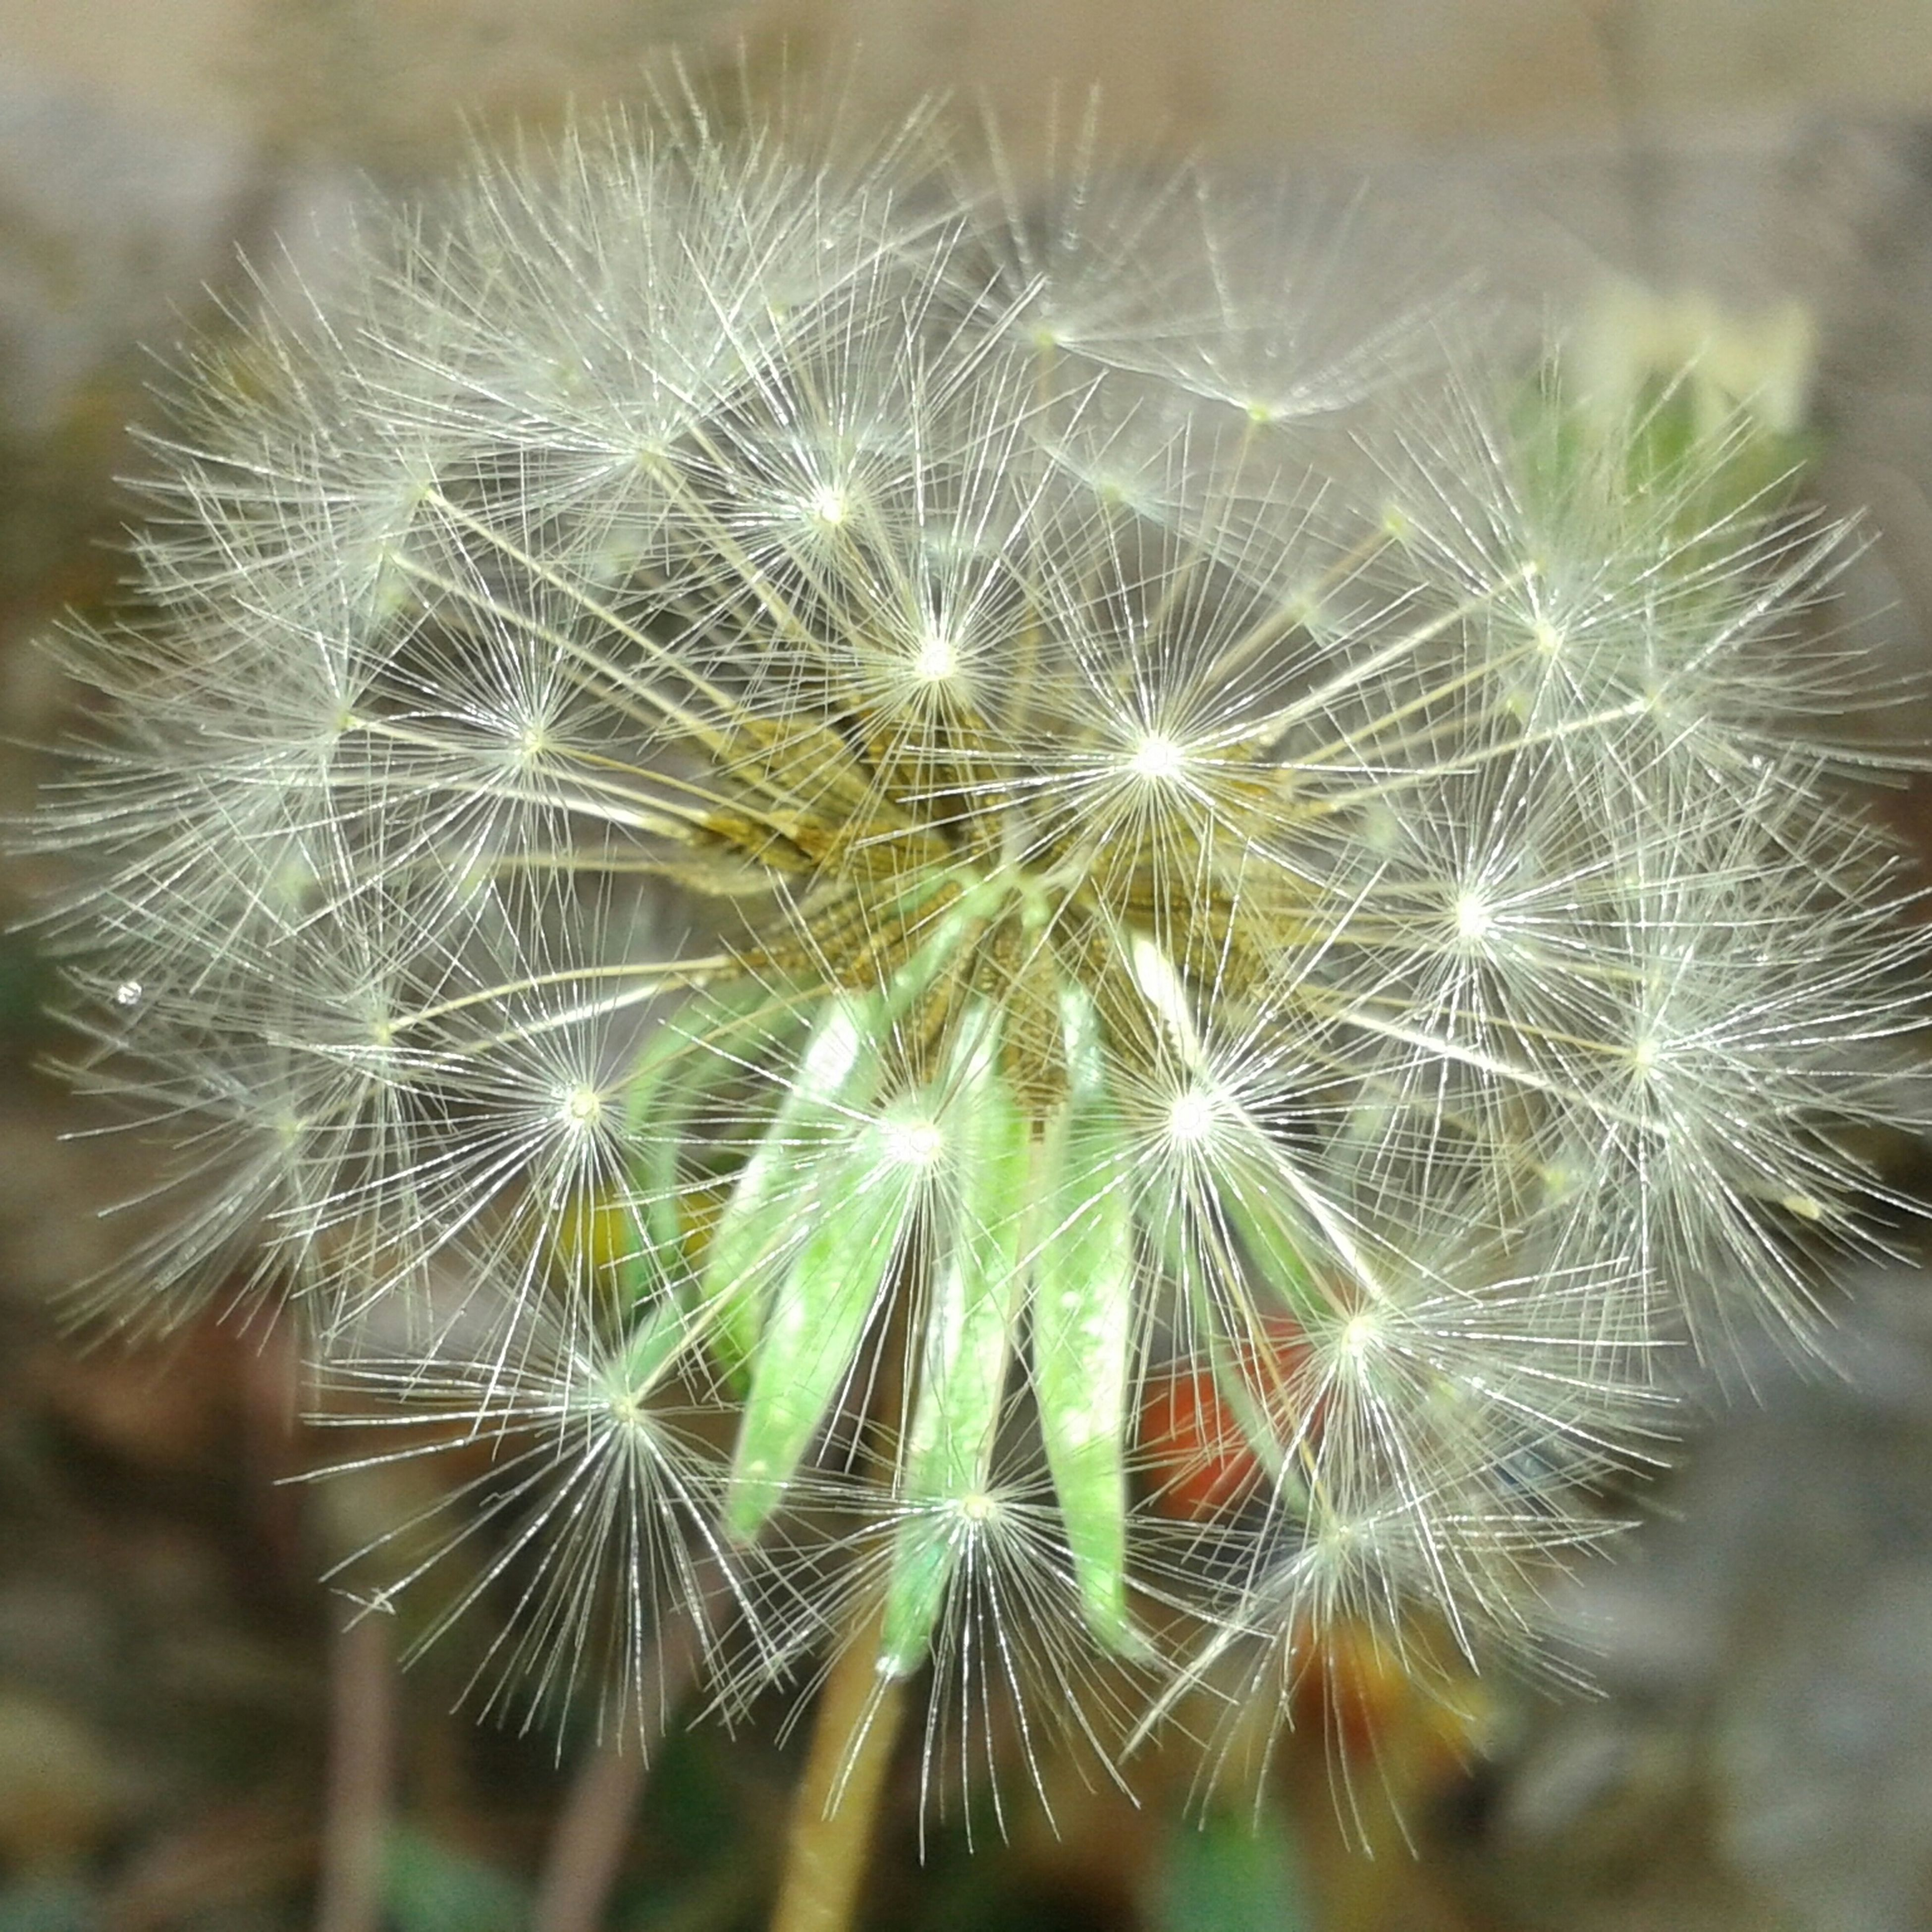 dandelion, fragility, flower, close-up, growth, focus on foreground, freshness, nature, beauty in nature, dandelion seed, flower head, plant, softness, selective focus, single flower, uncultivated, seed, wildflower, day, outdoors